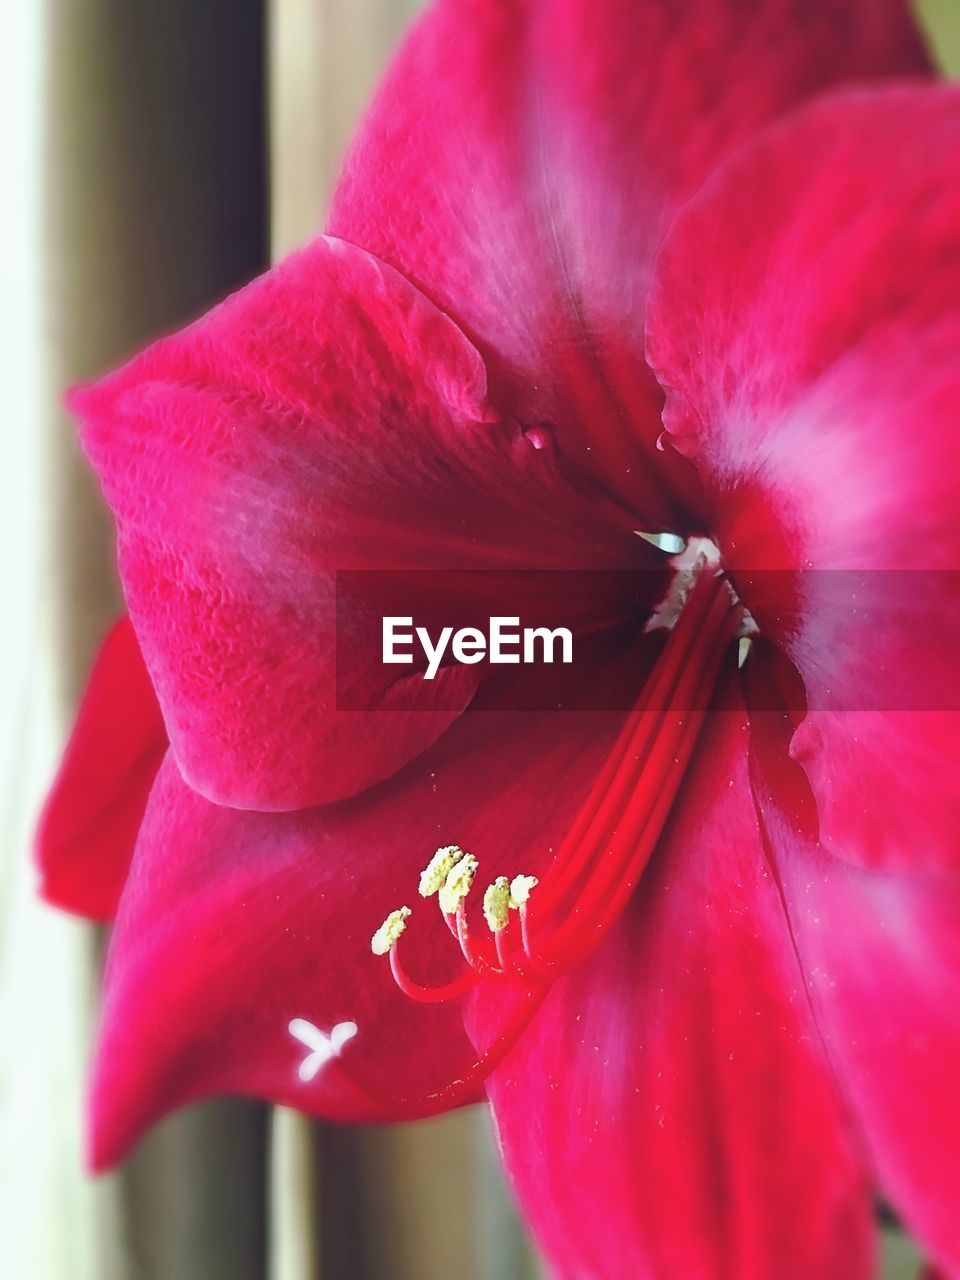 flower, petal, beauty in nature, red, fragility, nature, flower head, close-up, freshness, growth, no people, day, outdoors, stamen, hibiscus, plant, blooming, day lily